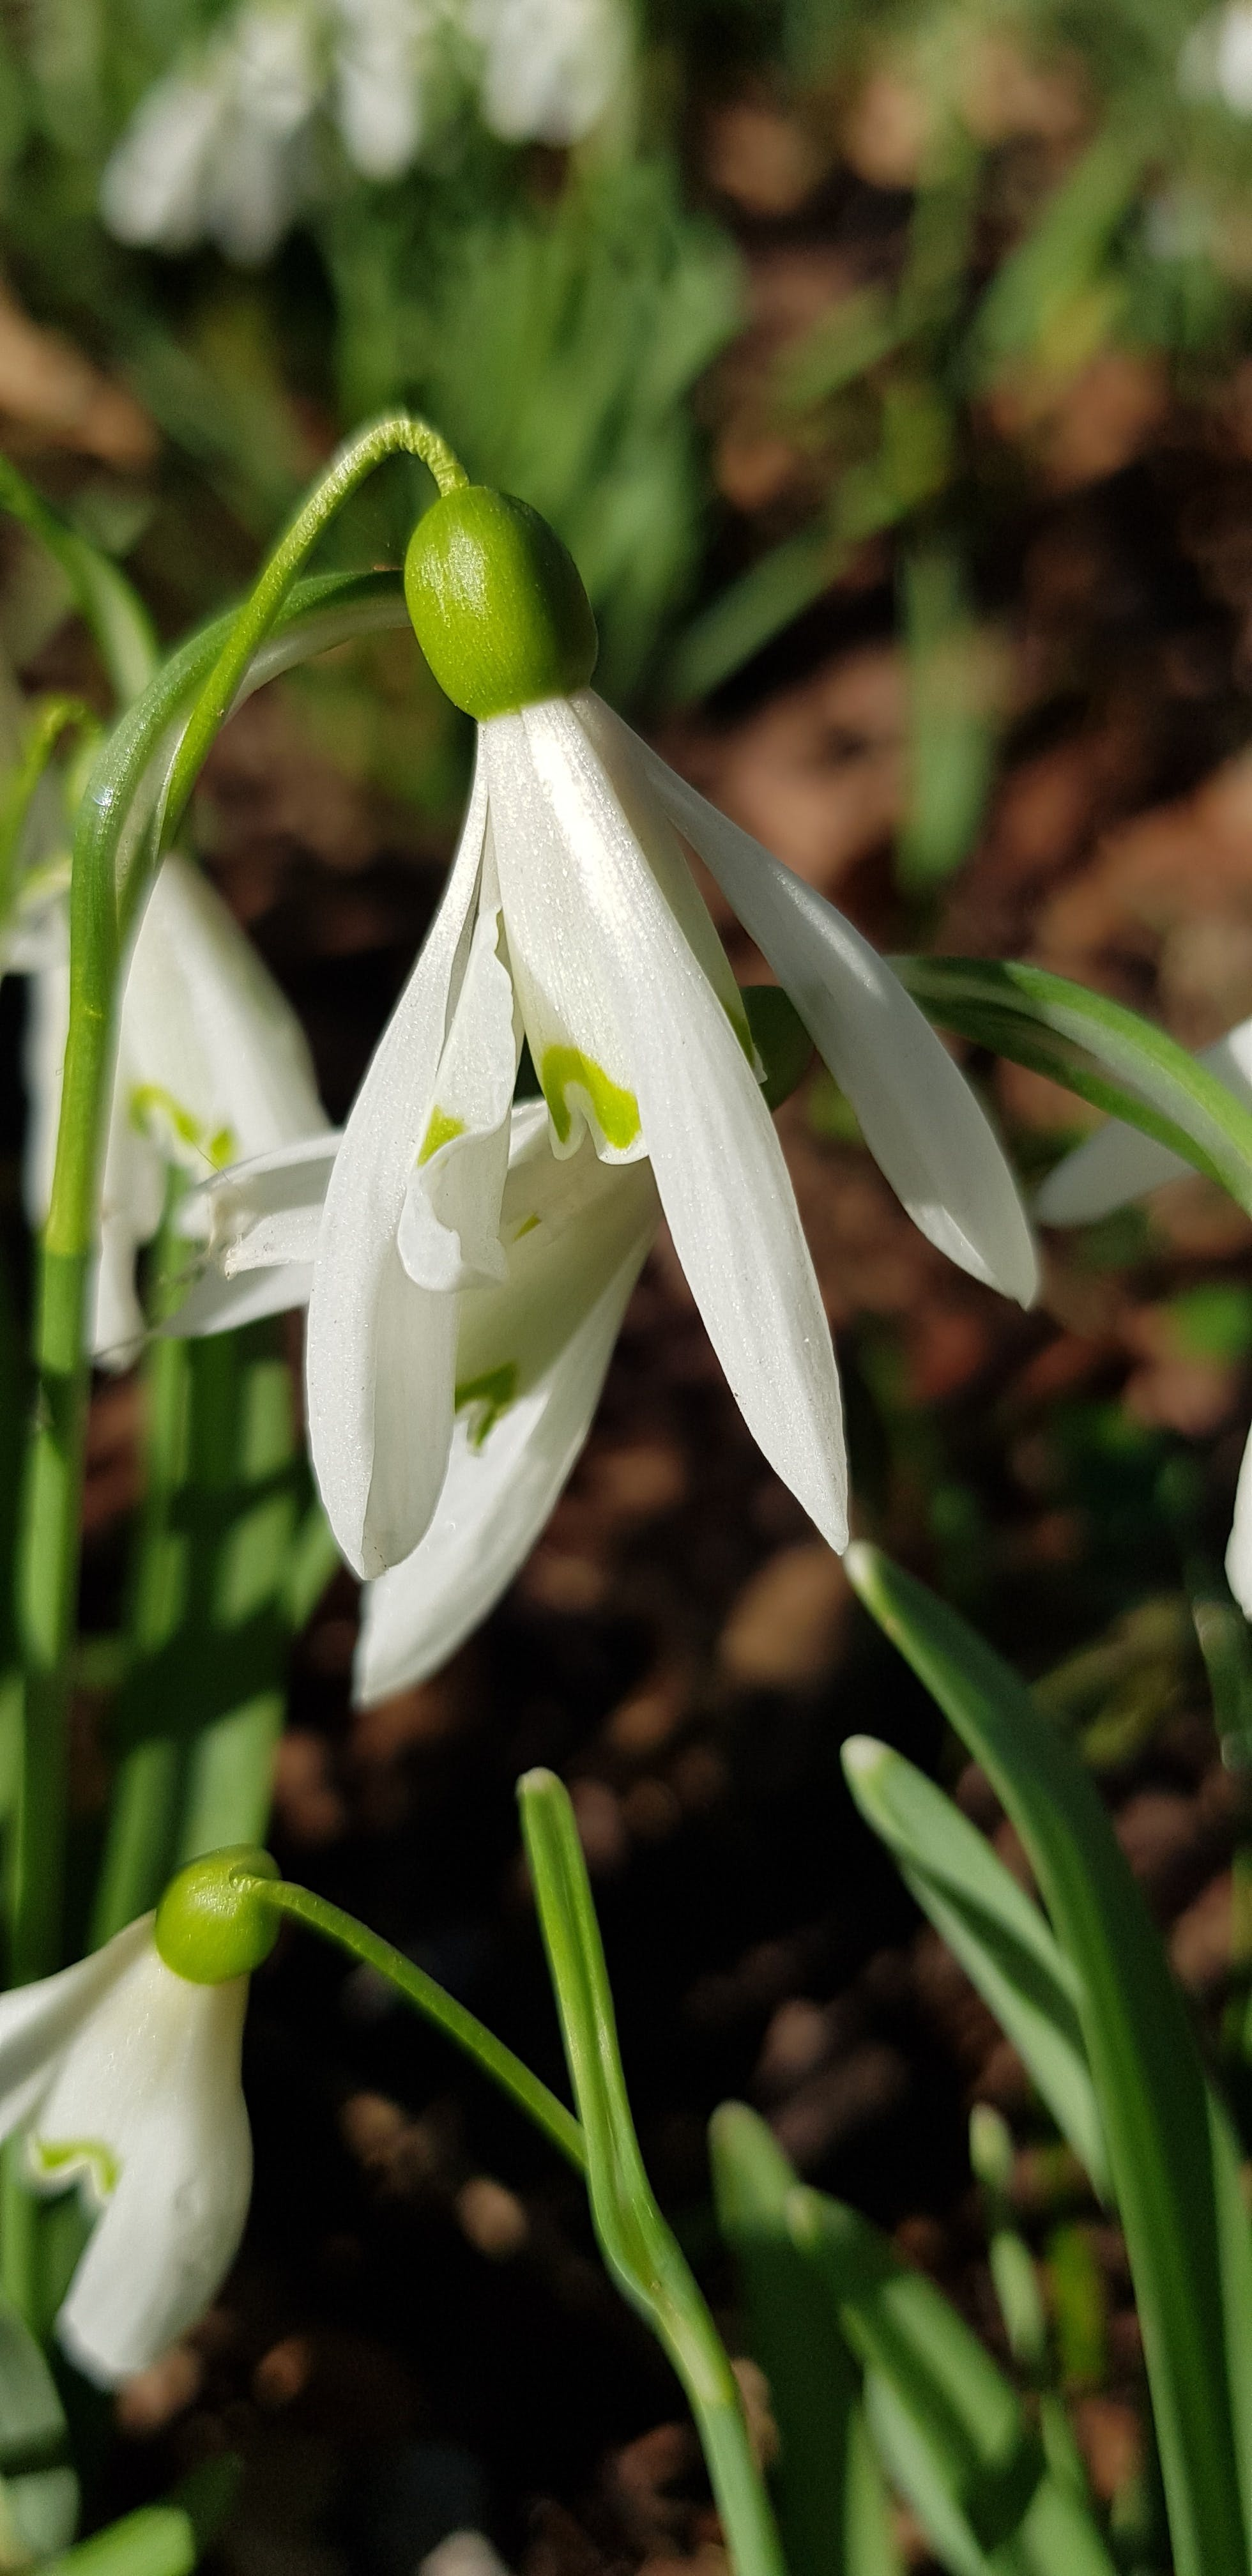 Free stock photo of flower, samsung galaxy s8, snowdrop, undergrowth